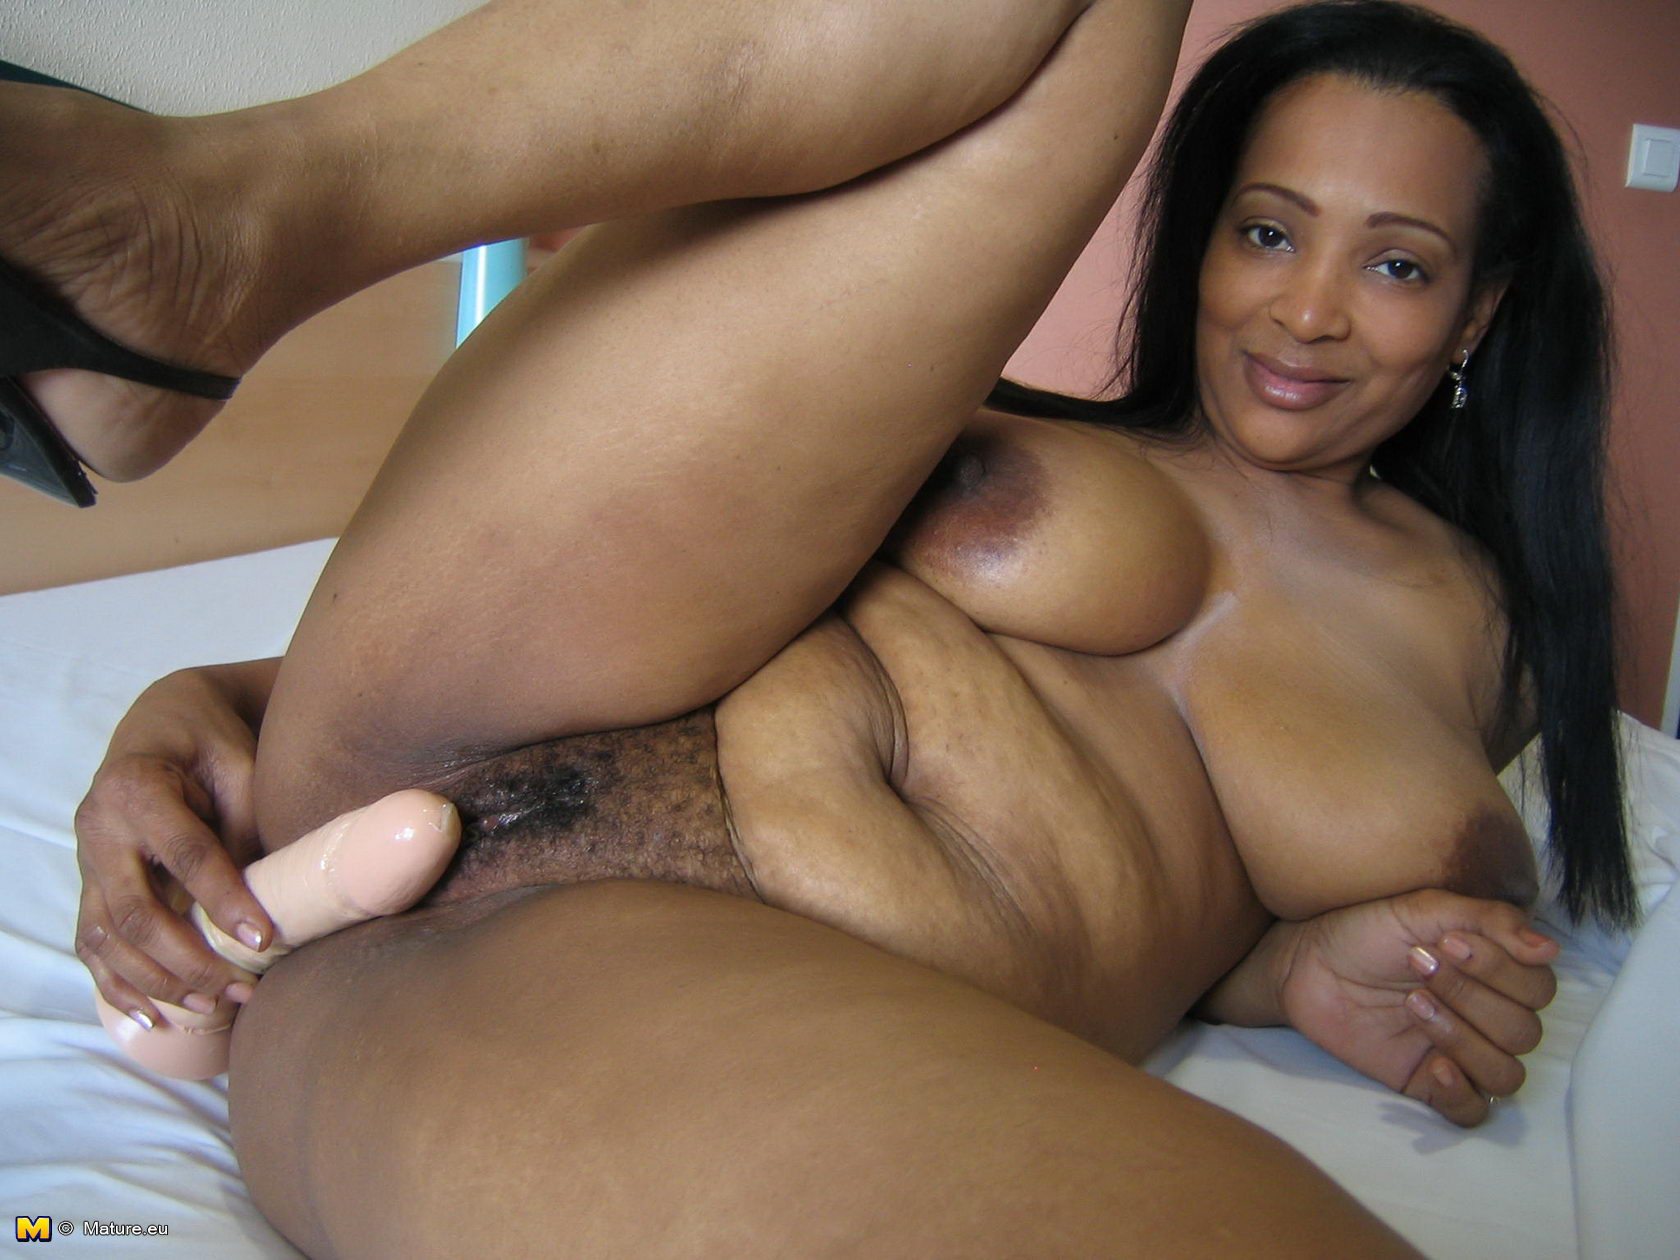 Thanks mature ebony mom nude well understand